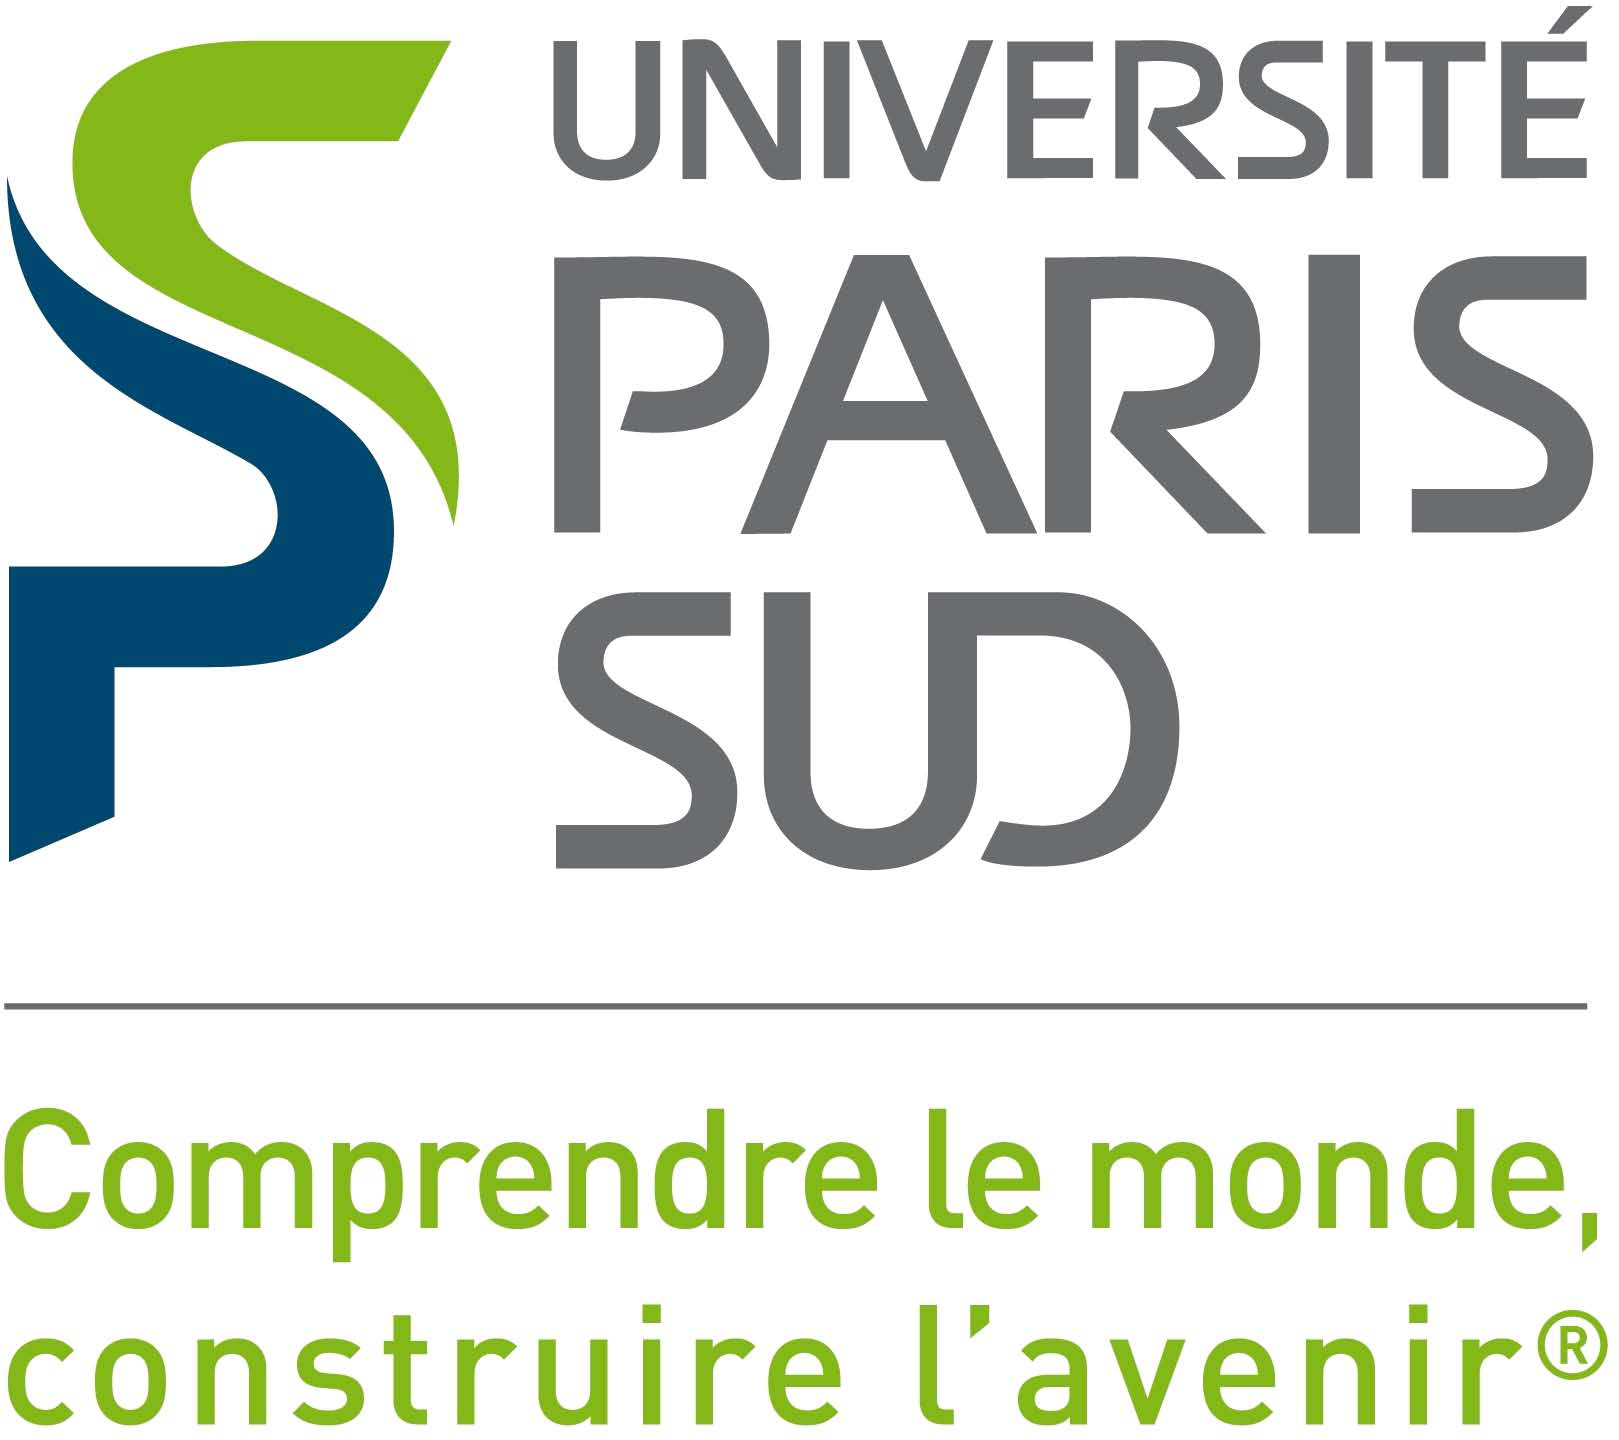 Université Paris-Sud Ecole Doctorale d Informatique de Paris-Sud INRIA SACLAY ÎLE-DE-FRANCE/LABORATORIE DE RECHERCHE EN INFORMATIQUE Discipline : Informatique En Cotutelle Internationale avec